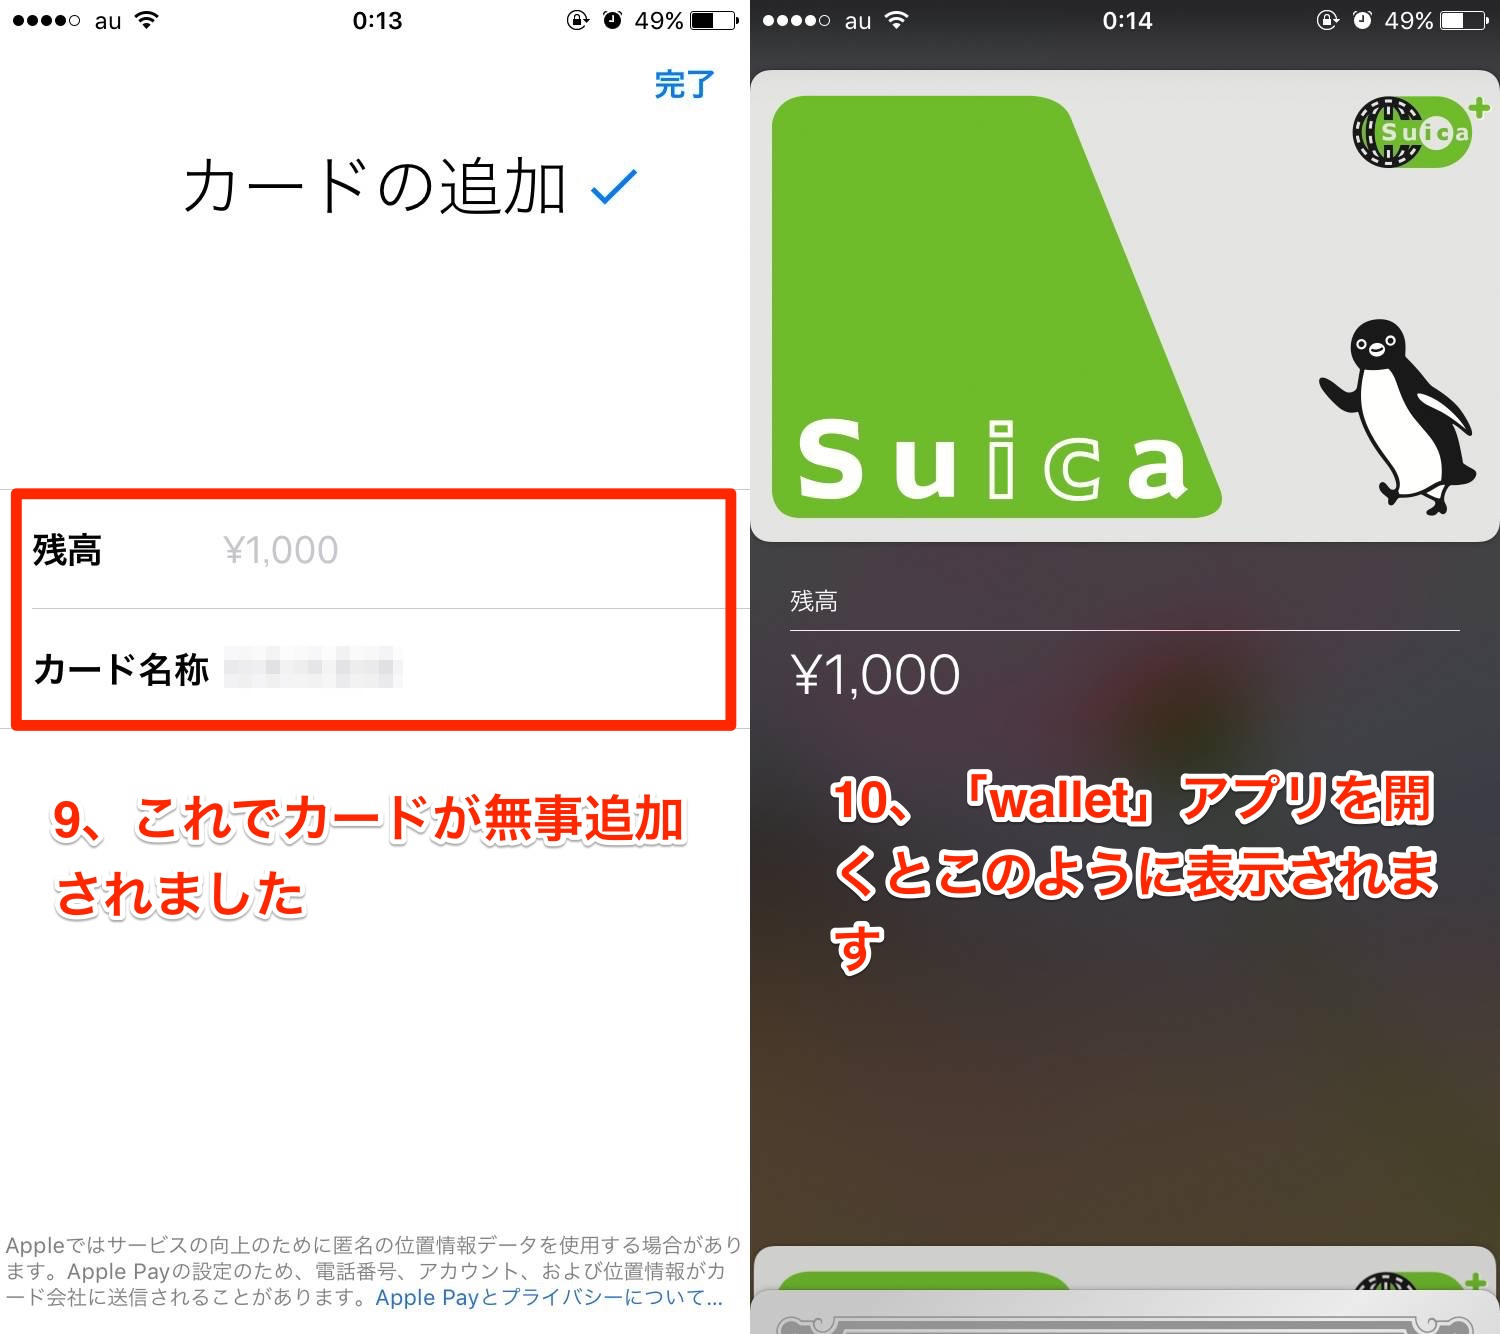 apple_pay-suica8